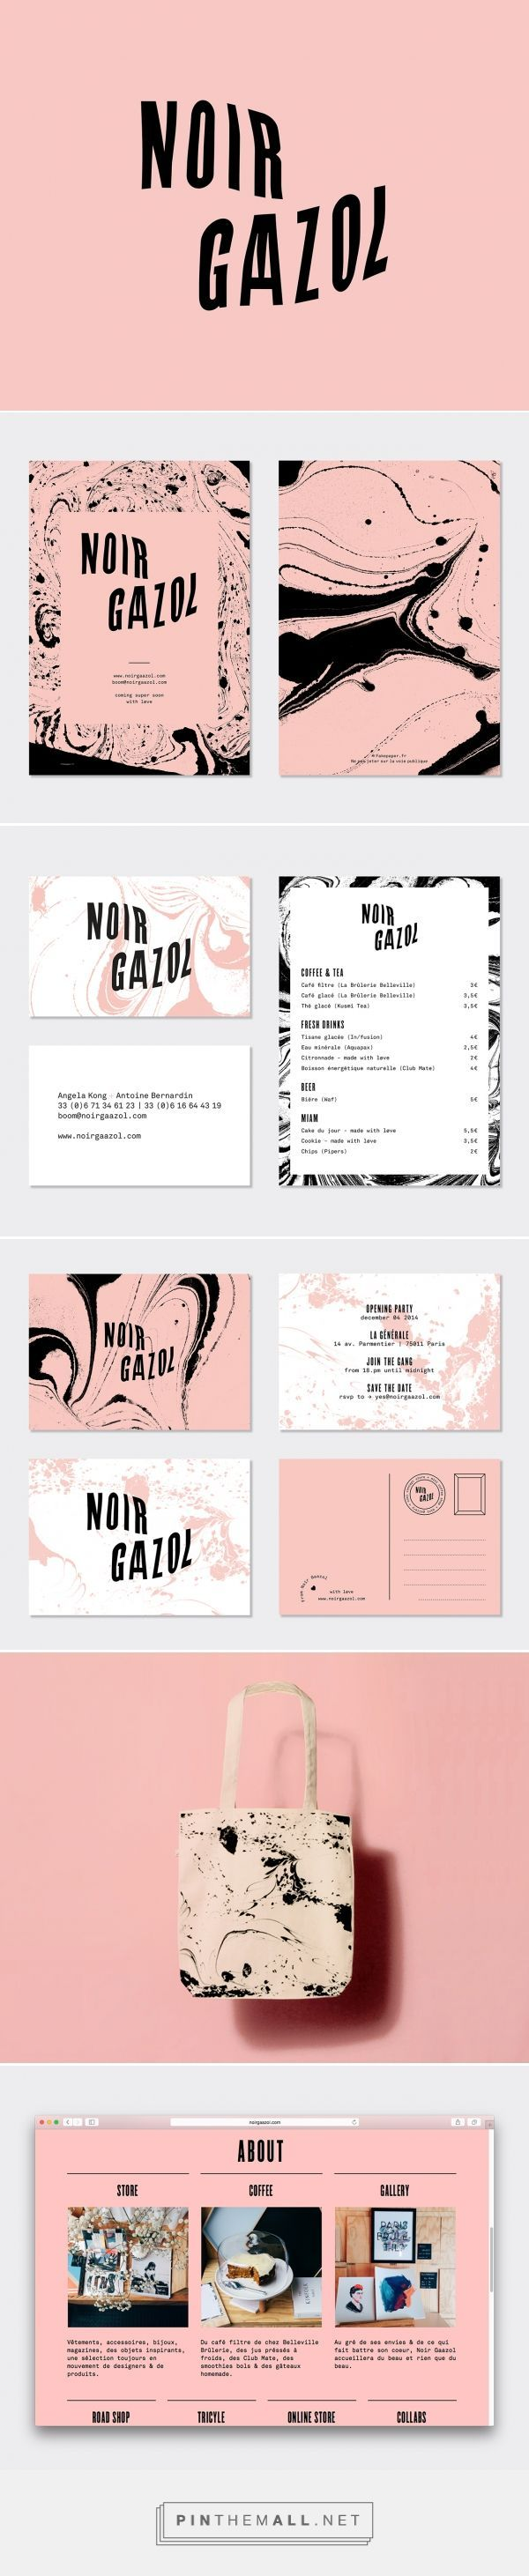 237 best Texture in Graphic Design images on Pinterest | Frame ...